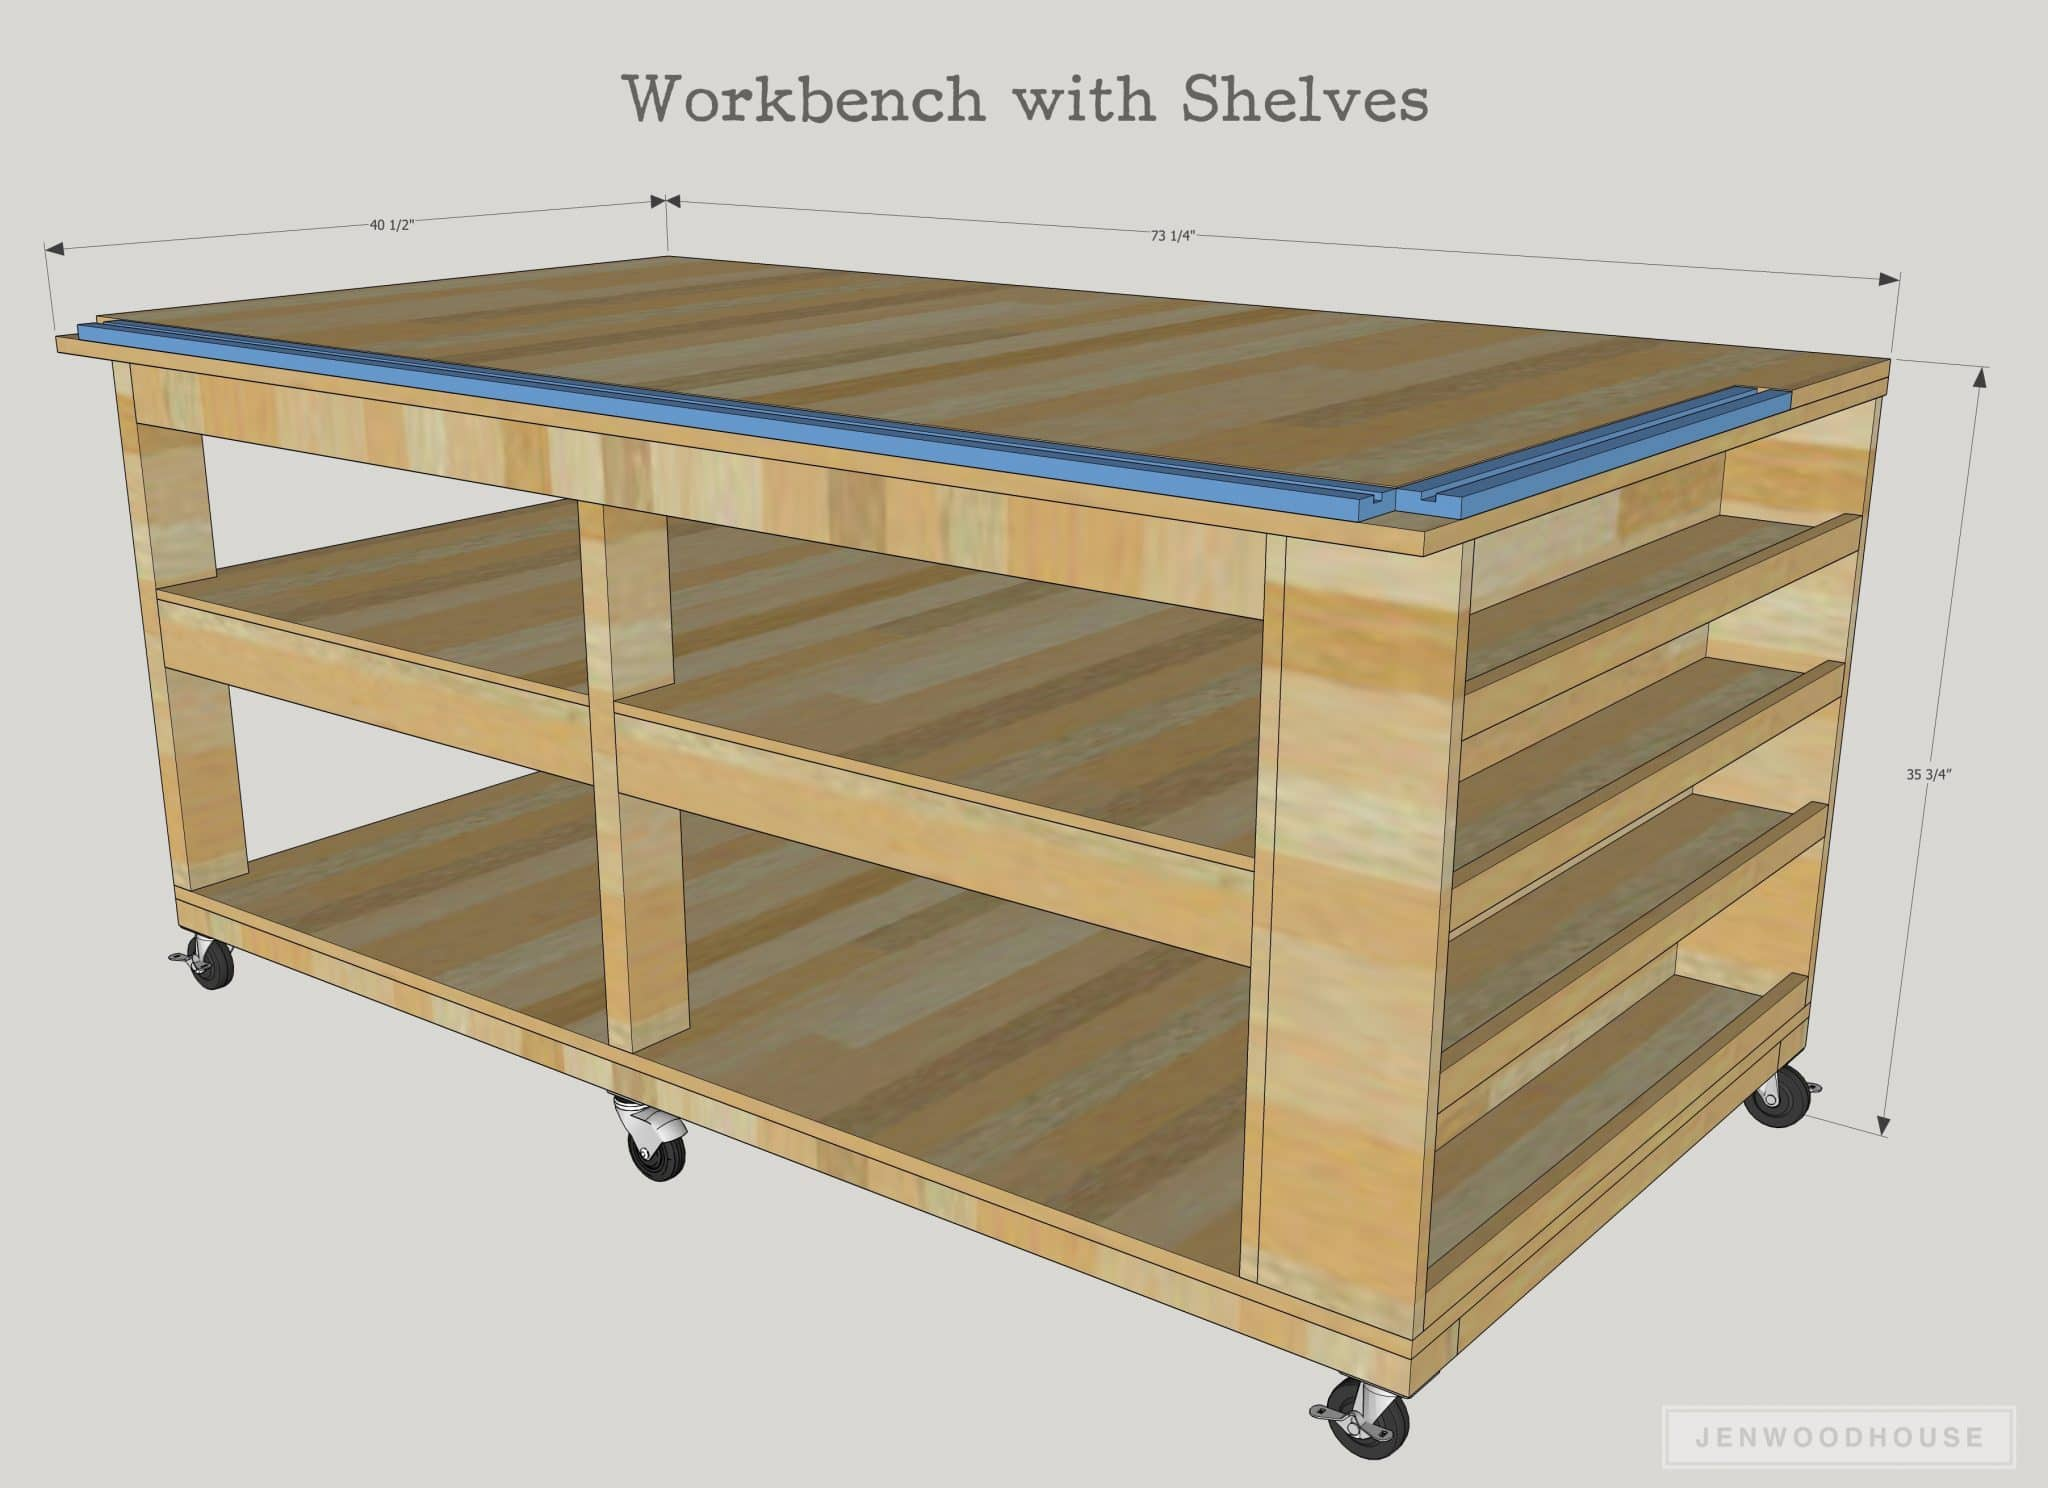 Mobile Garage Workbench Ideas : How to build a diy mobile workbench with shelves